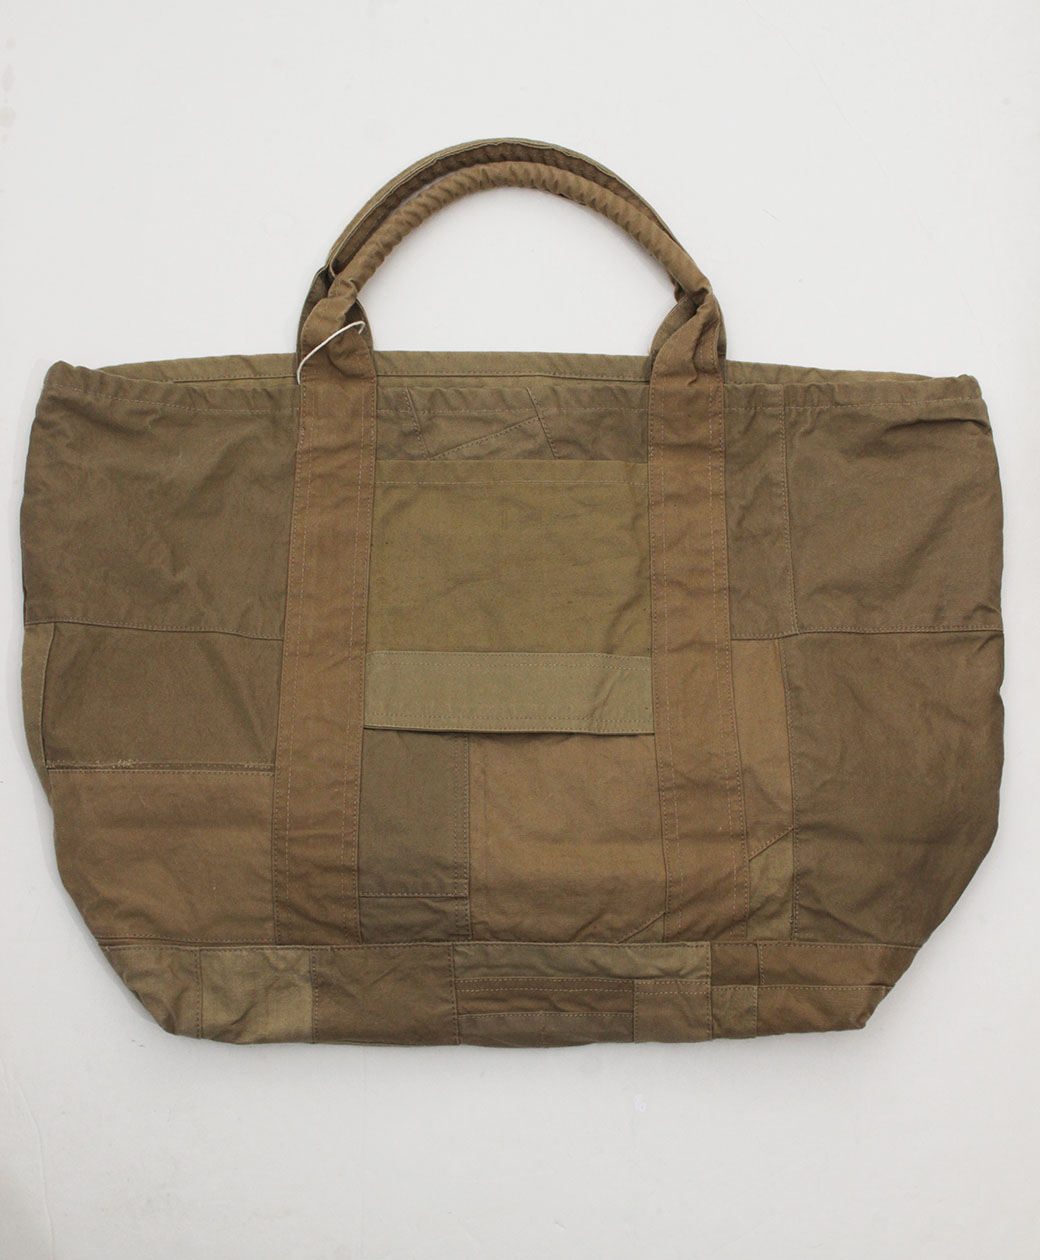 hobo COTTON FRENCH ARMY CLOTH PATCHWORK TOTE BAG L(BEIGE)